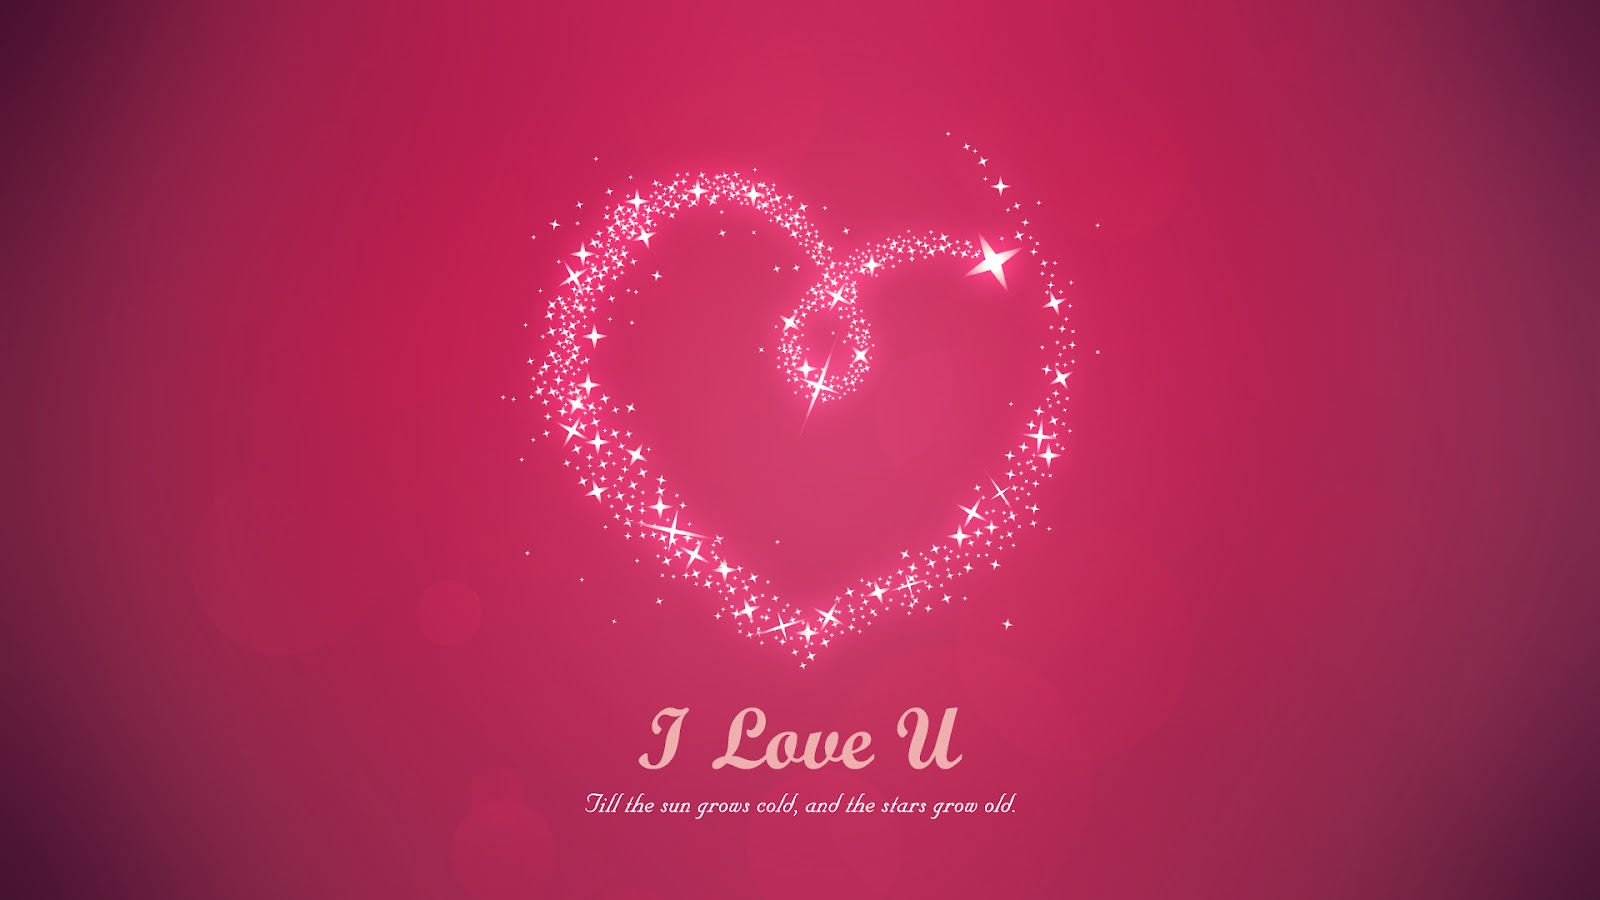 Love U Wallpapers With Quotes : i love u wallpapers love wallpapers love quotes ...